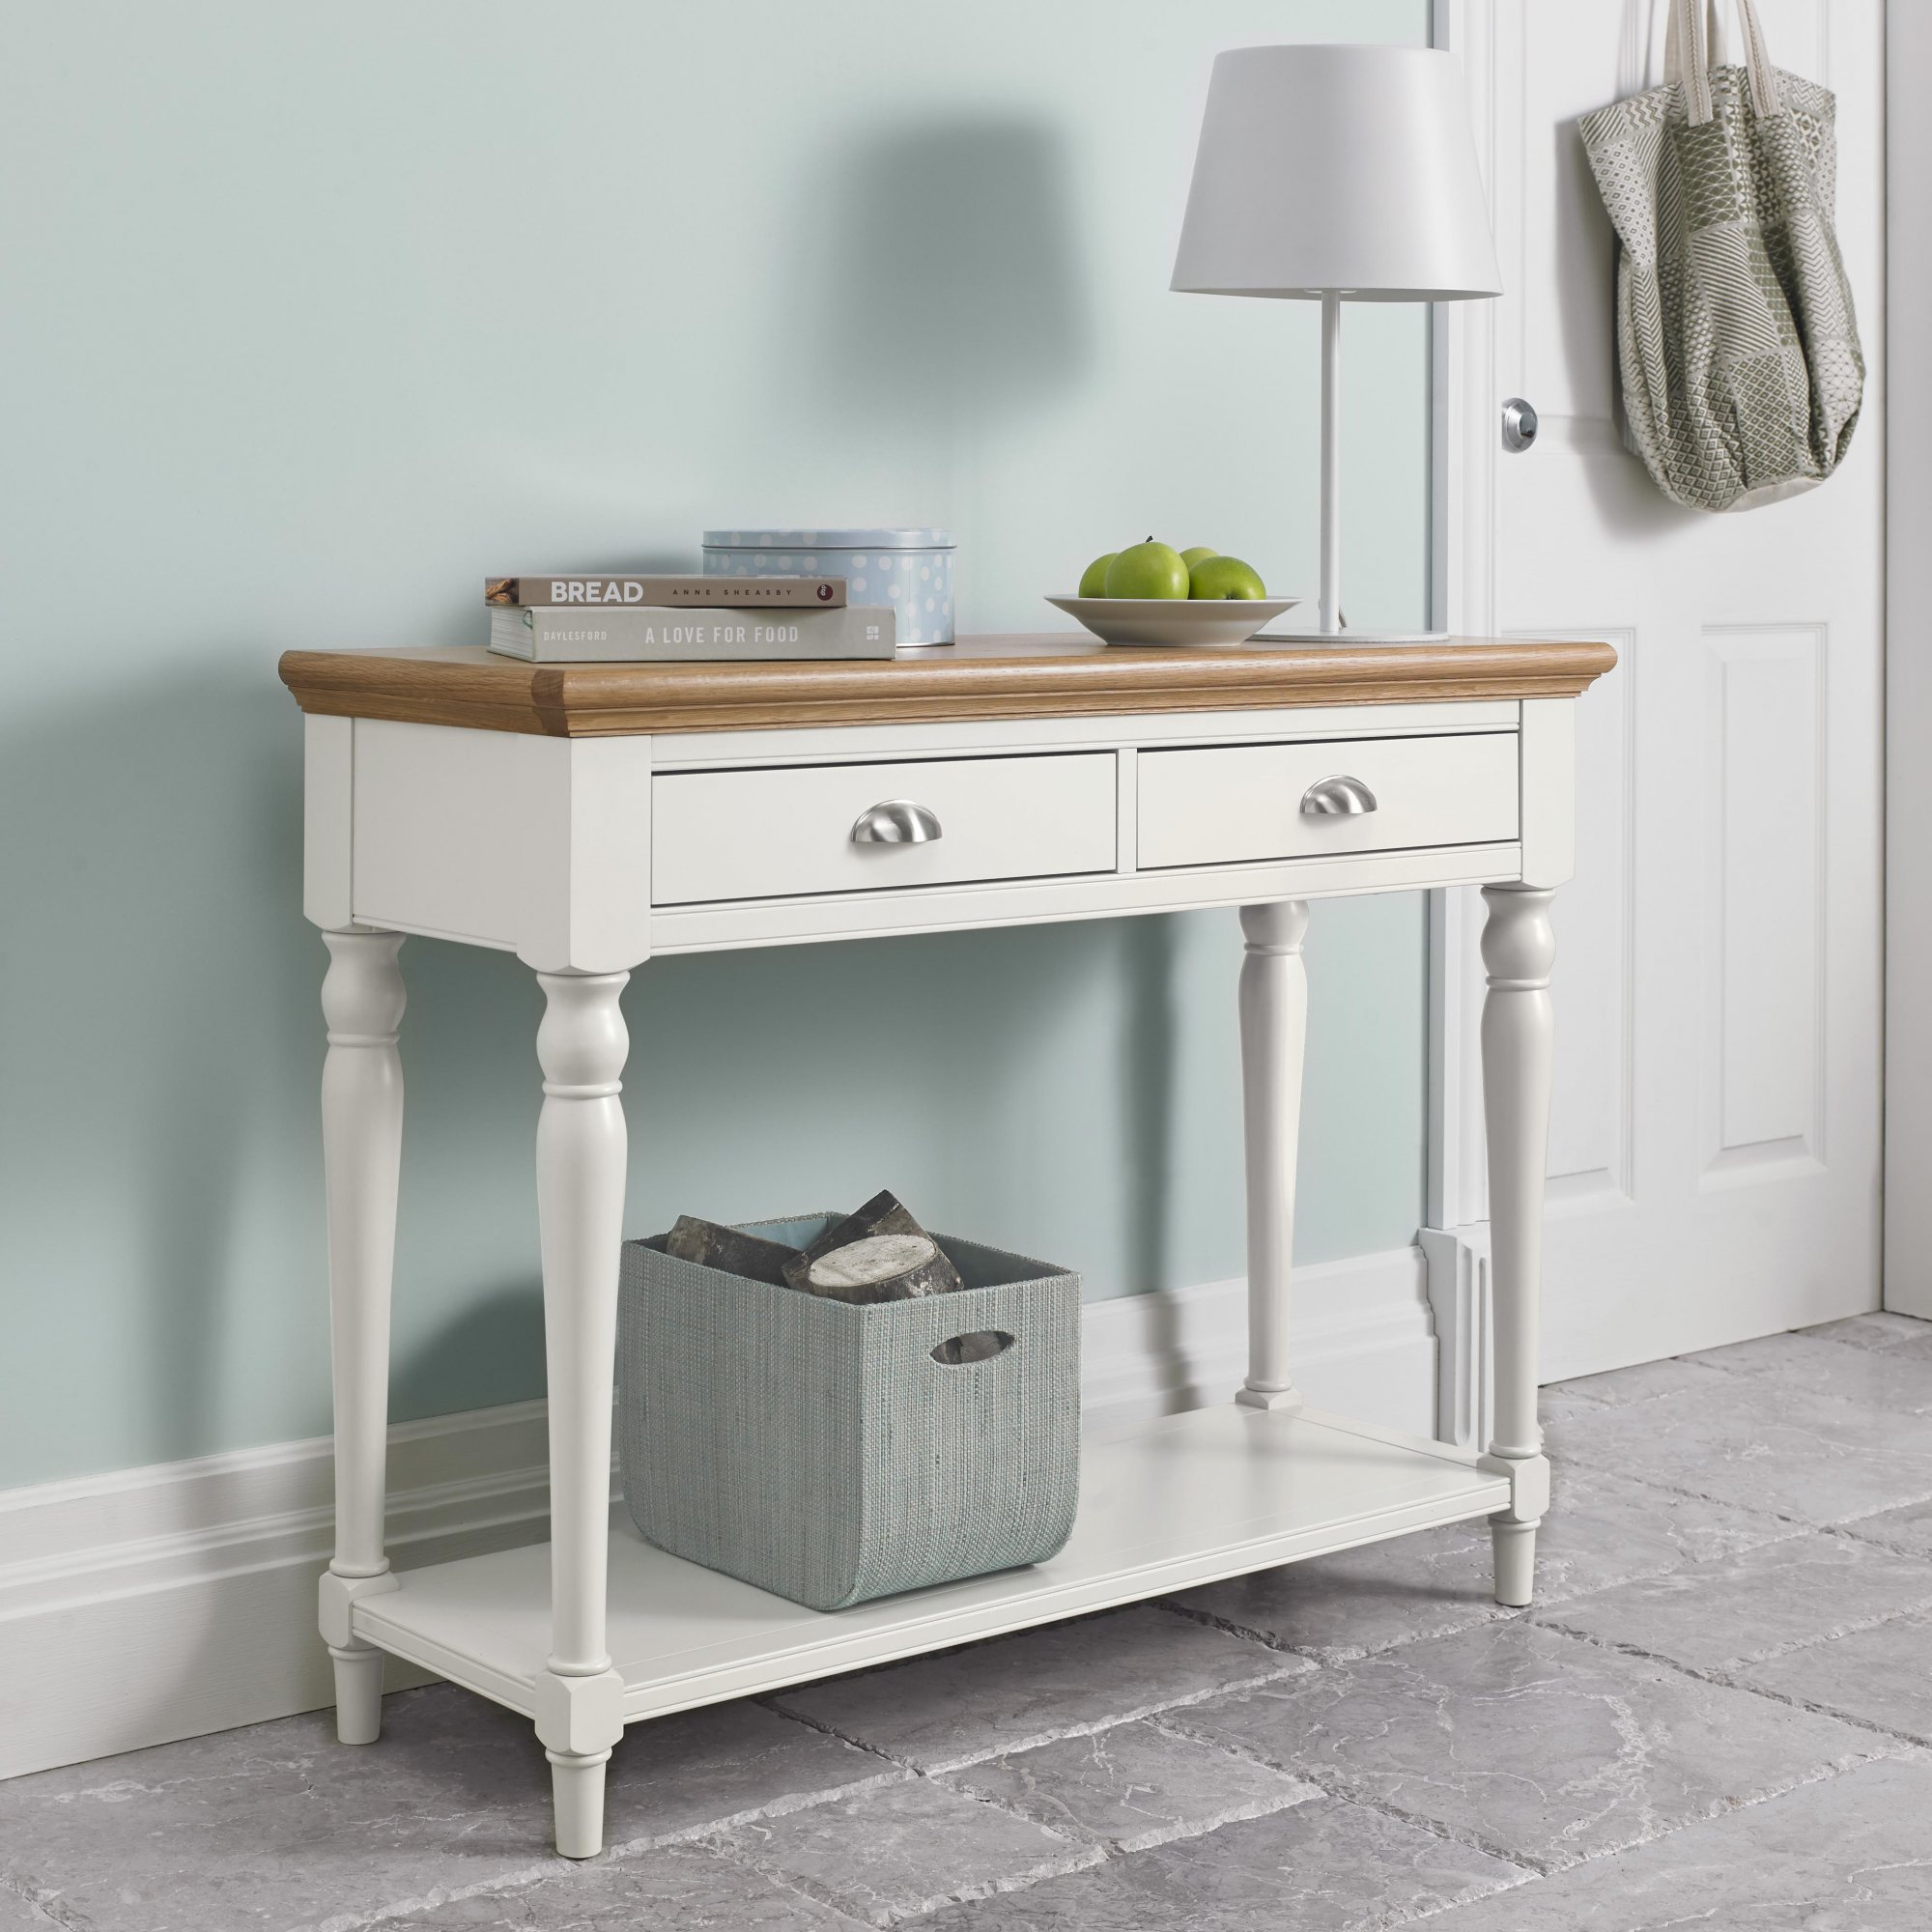 KYRA TWO TONE CONSOLE TABLE - L104cm x D38cm x H80cm